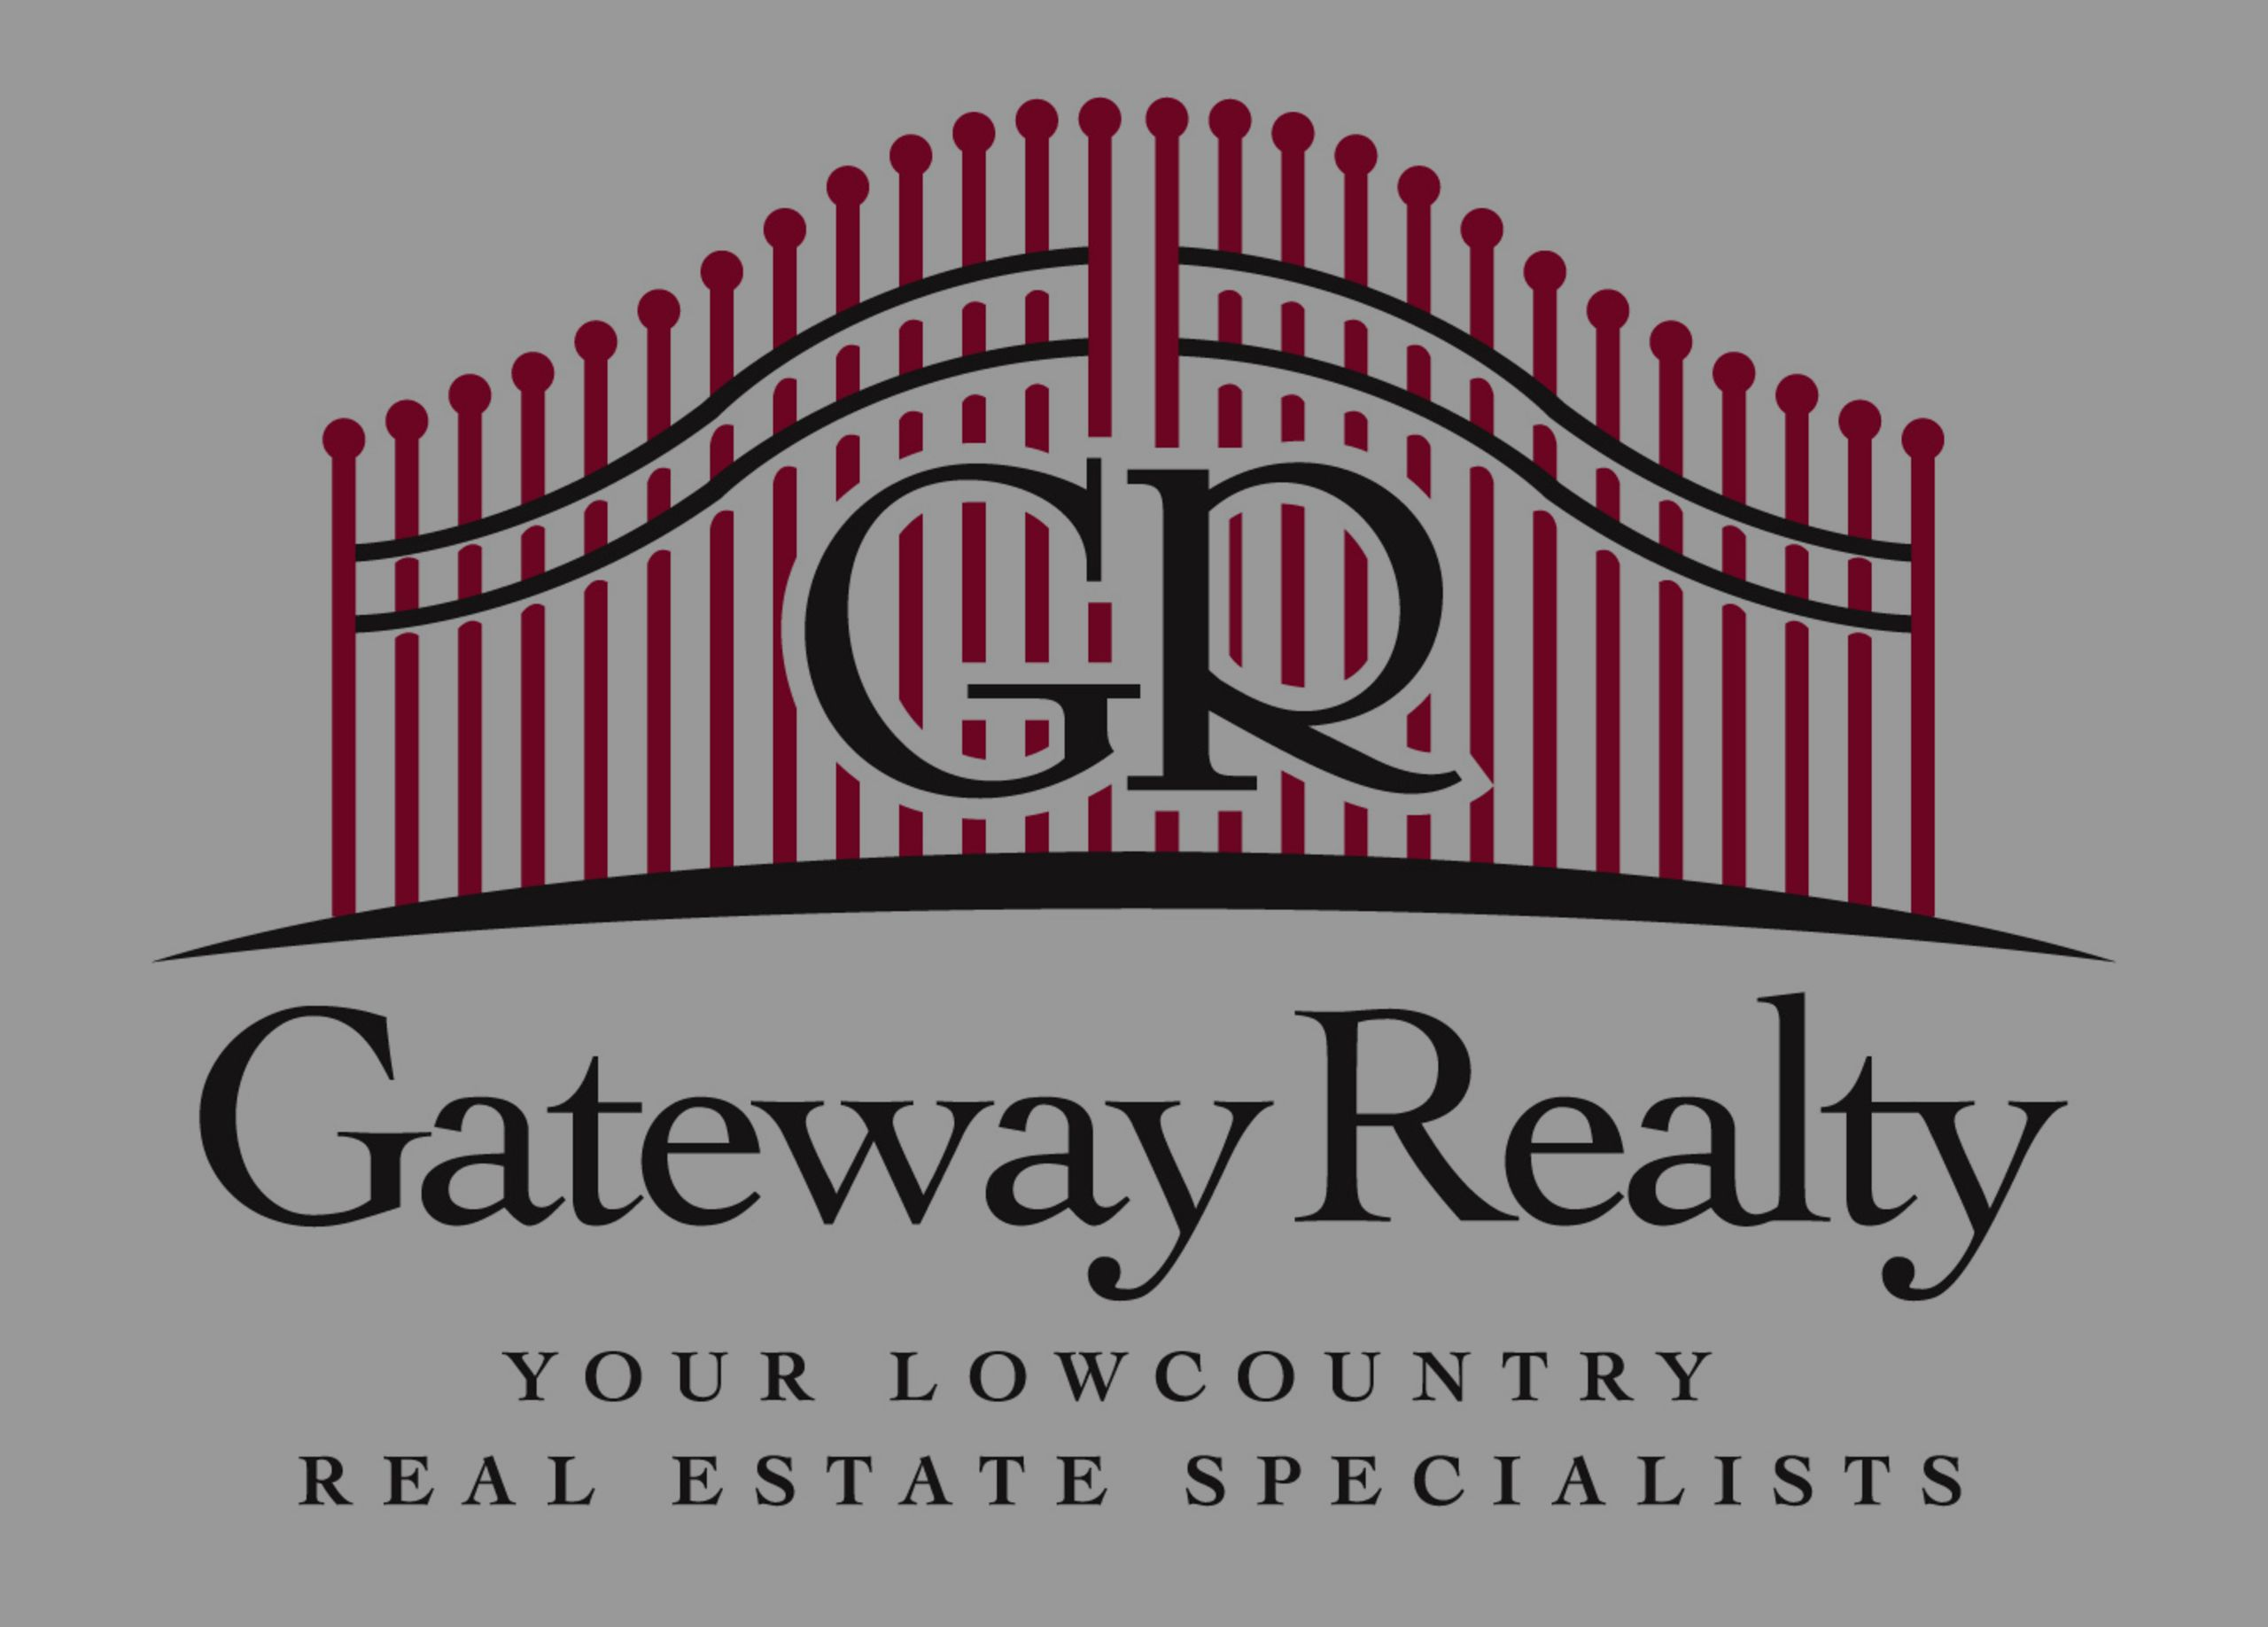 Check out Steven Stempel the Bluffton Property Pro at Gateway Realty